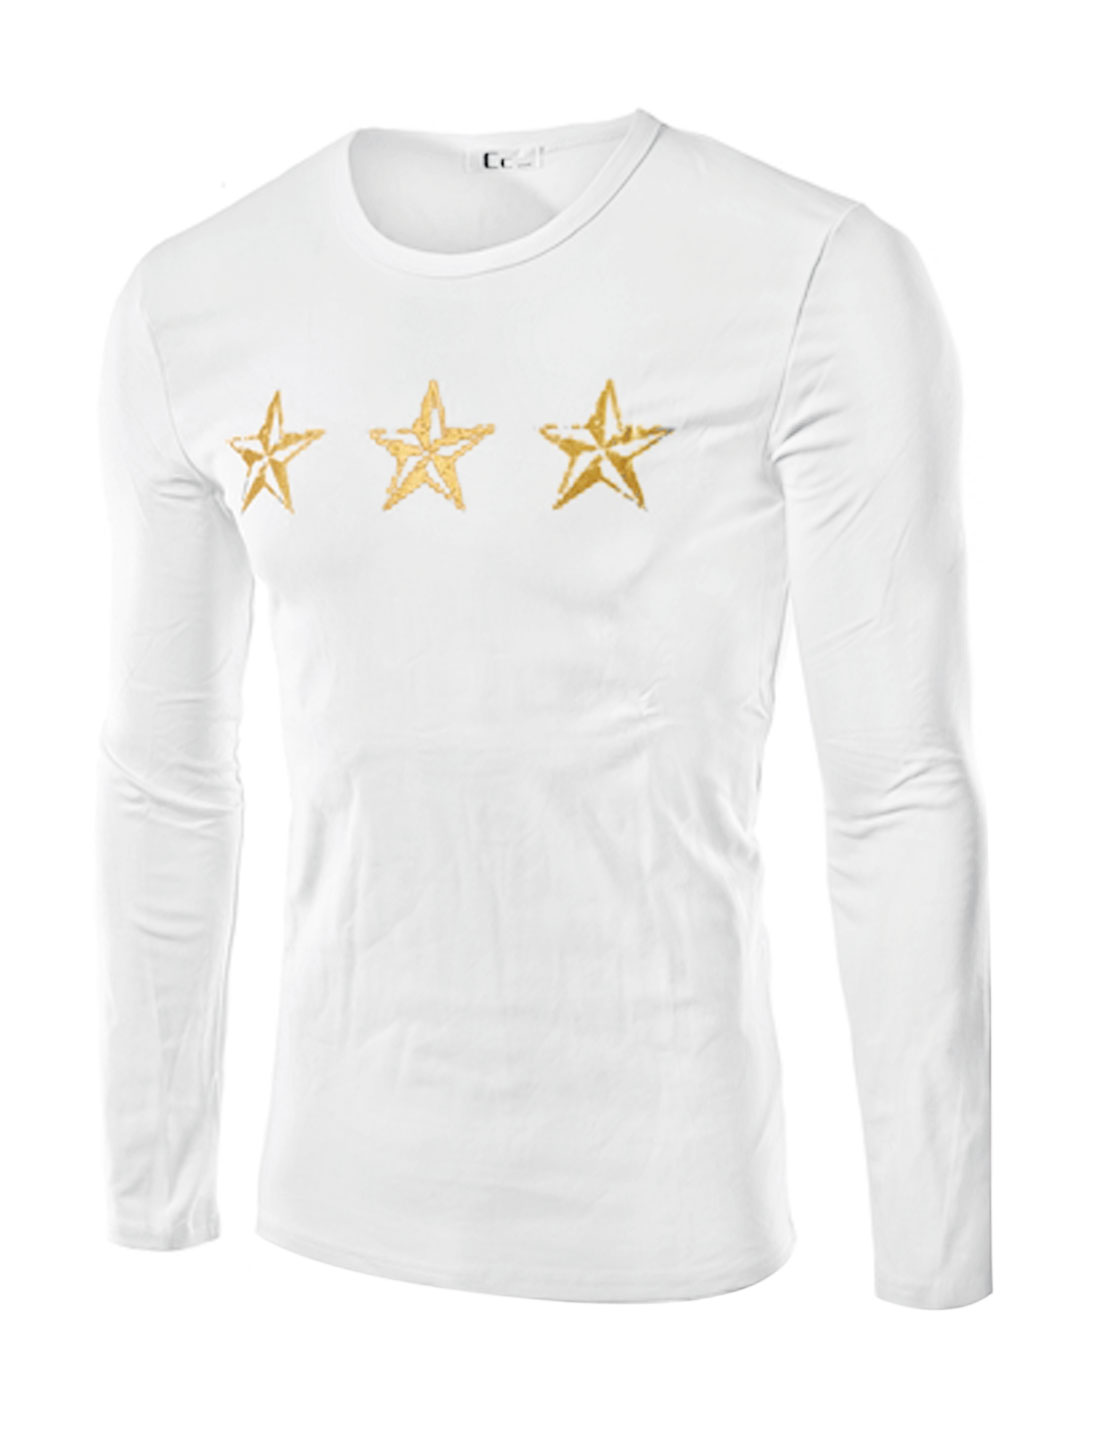 Men Crew Neck Stars Letters Slim Fit Tee Shirt White M